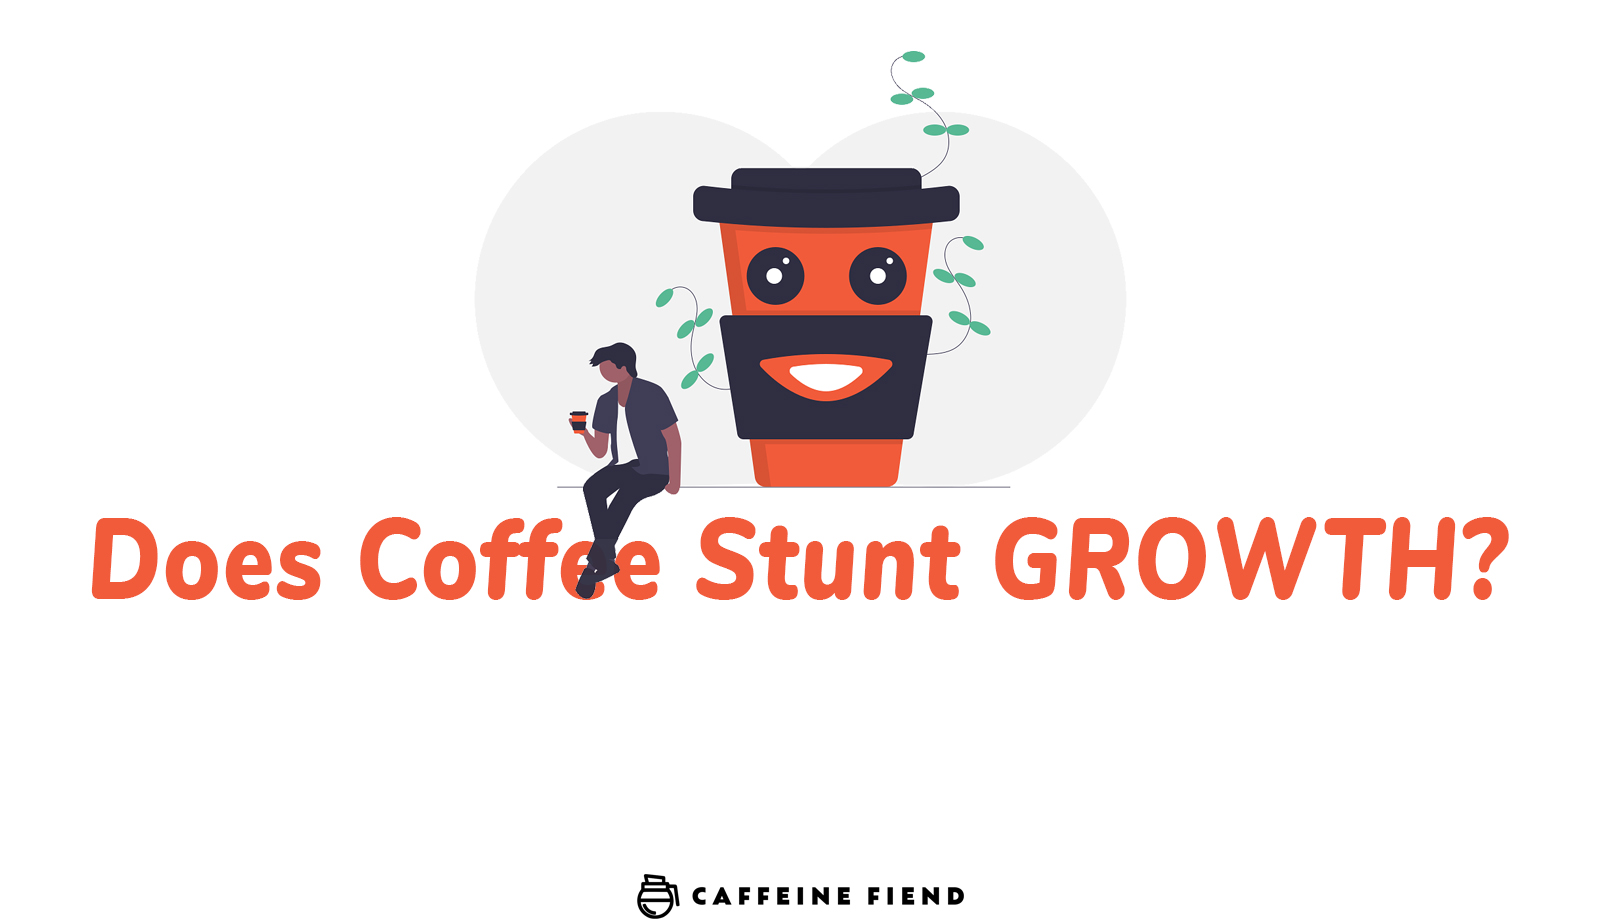 does coffee stunt growth article on caffeine fiend